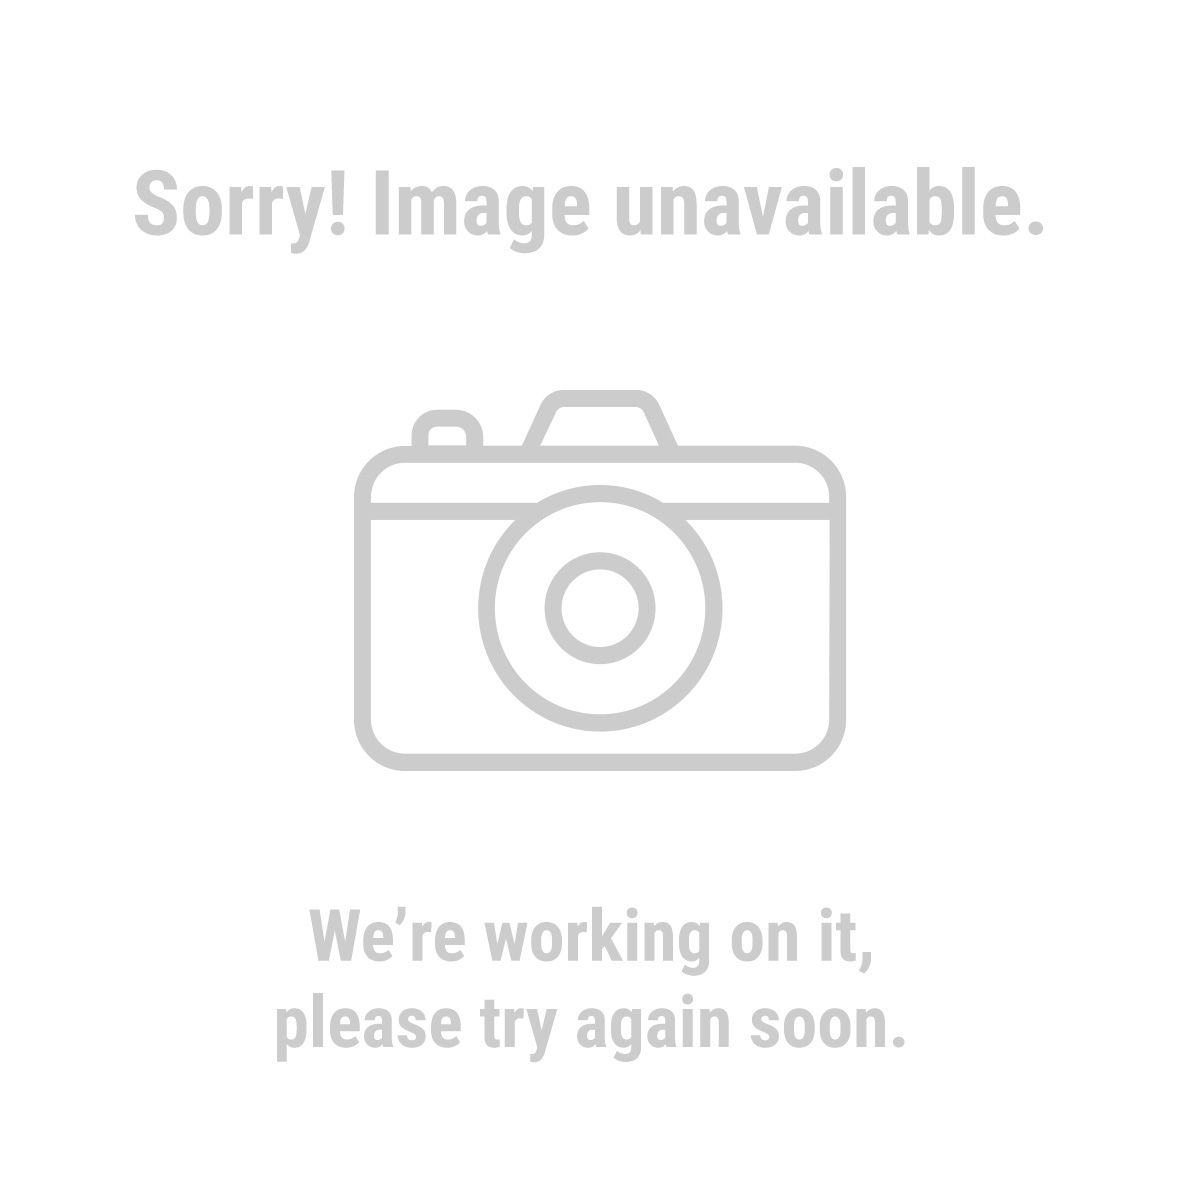 Grant's 63362 Microfiber Cleaning Cloths 12 Pk.